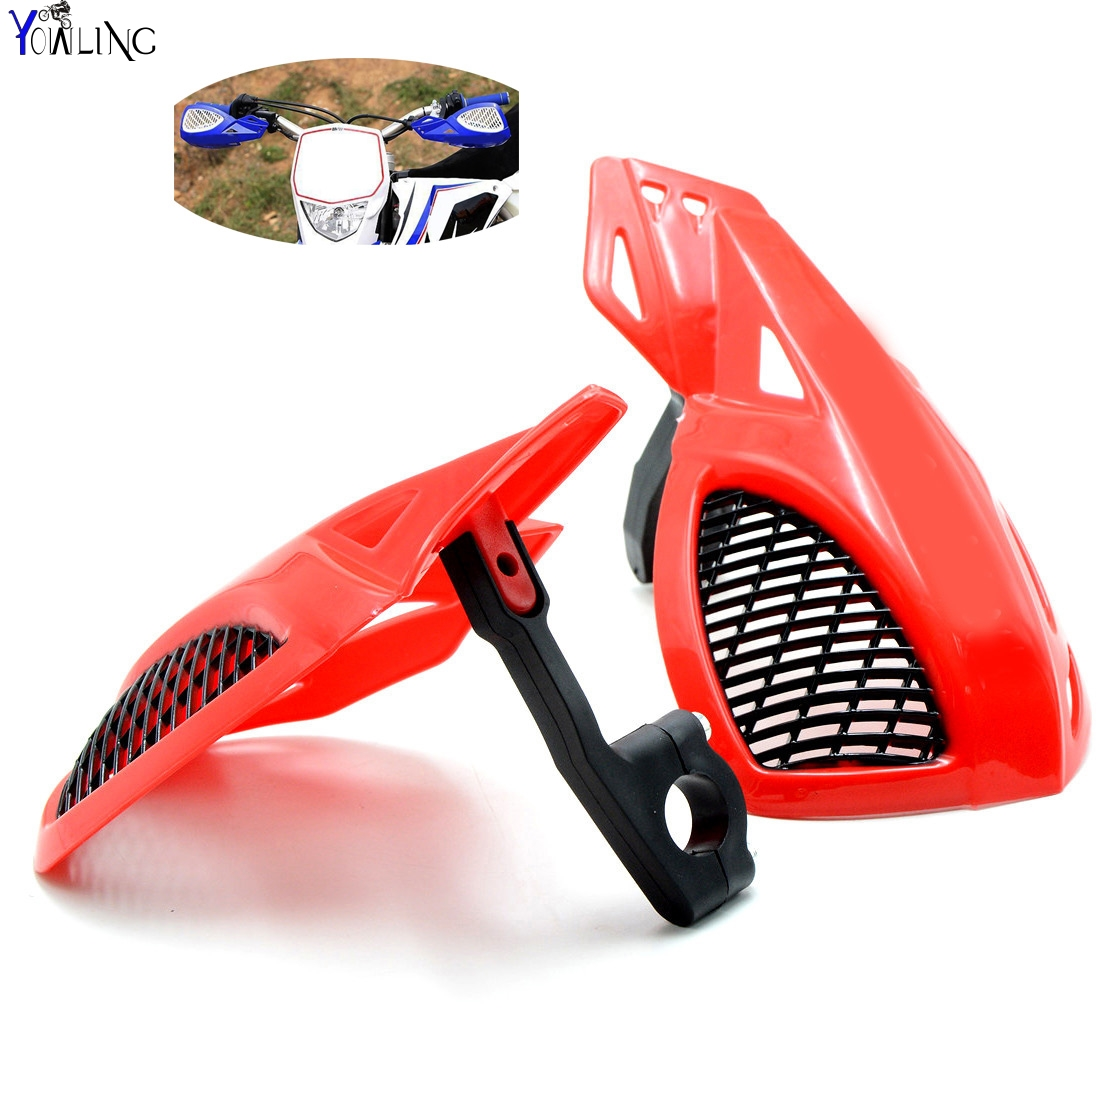 Dirt bike Motorcycle 7/8''22mm handlebar brake hand guard For HONDA CR80 CR85 CR125 CR250 CRF50 CRF70 AR F L M R X dirt bike motorcycle 7 8 22mm handlebar brake hand guard for yamaha yz250x yz426f yz450f yz450fx yz80 yz85